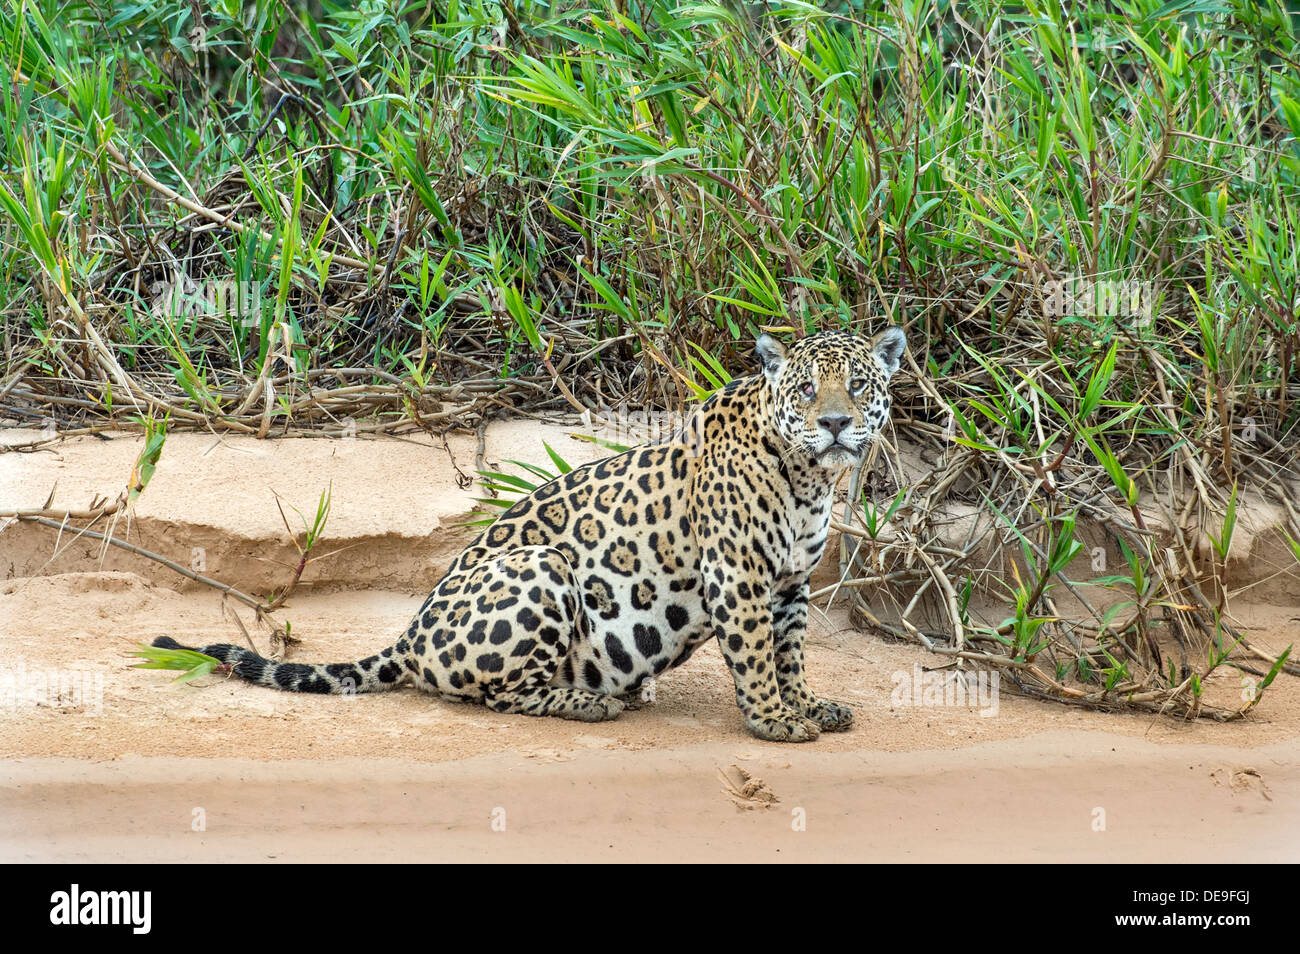 Male jaguar sitting on edge of river in Pantanal region of Brazil - Stock Image